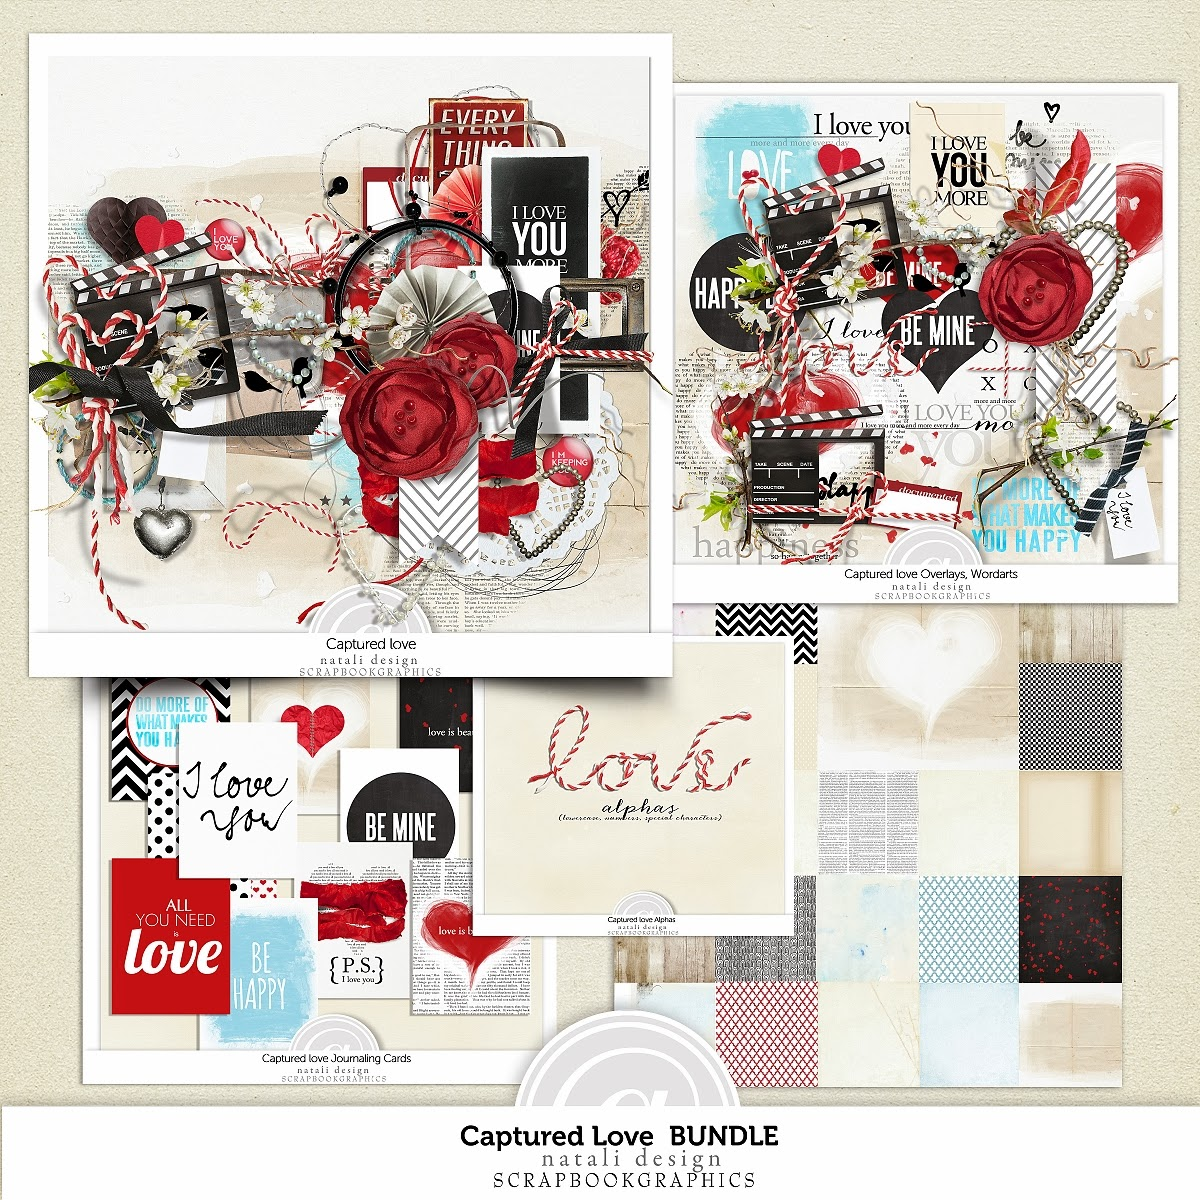 http://shop.scrapbookgraphics.com/Captured-Love-Bundle.html